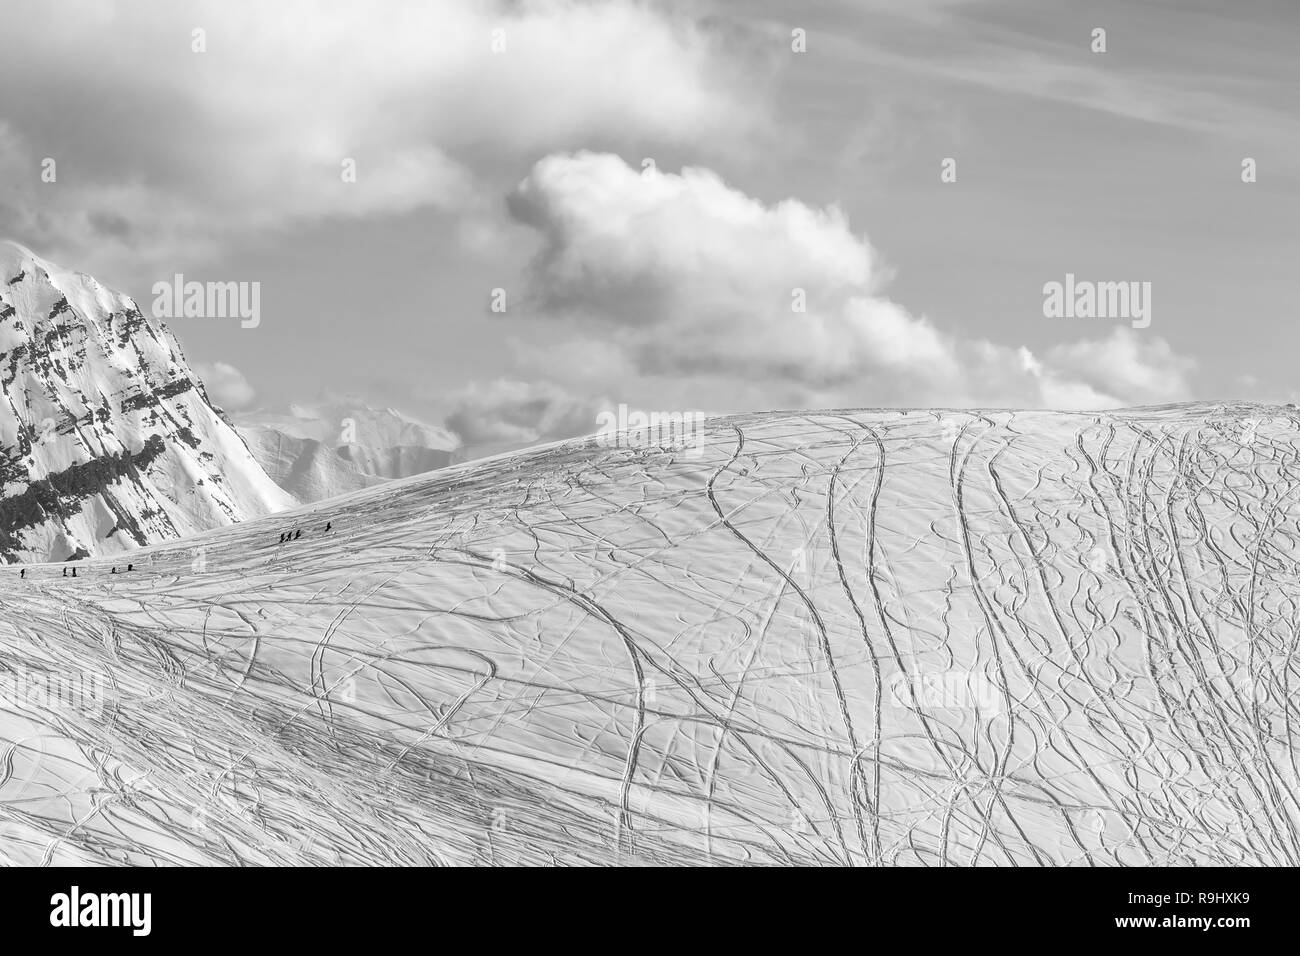 Snowy off piste slope for freeriding with traces from skis, snowboards and silhouette of freeriders at sunny winter day. Caucasus Mountains, Georgia,  - Stock Image